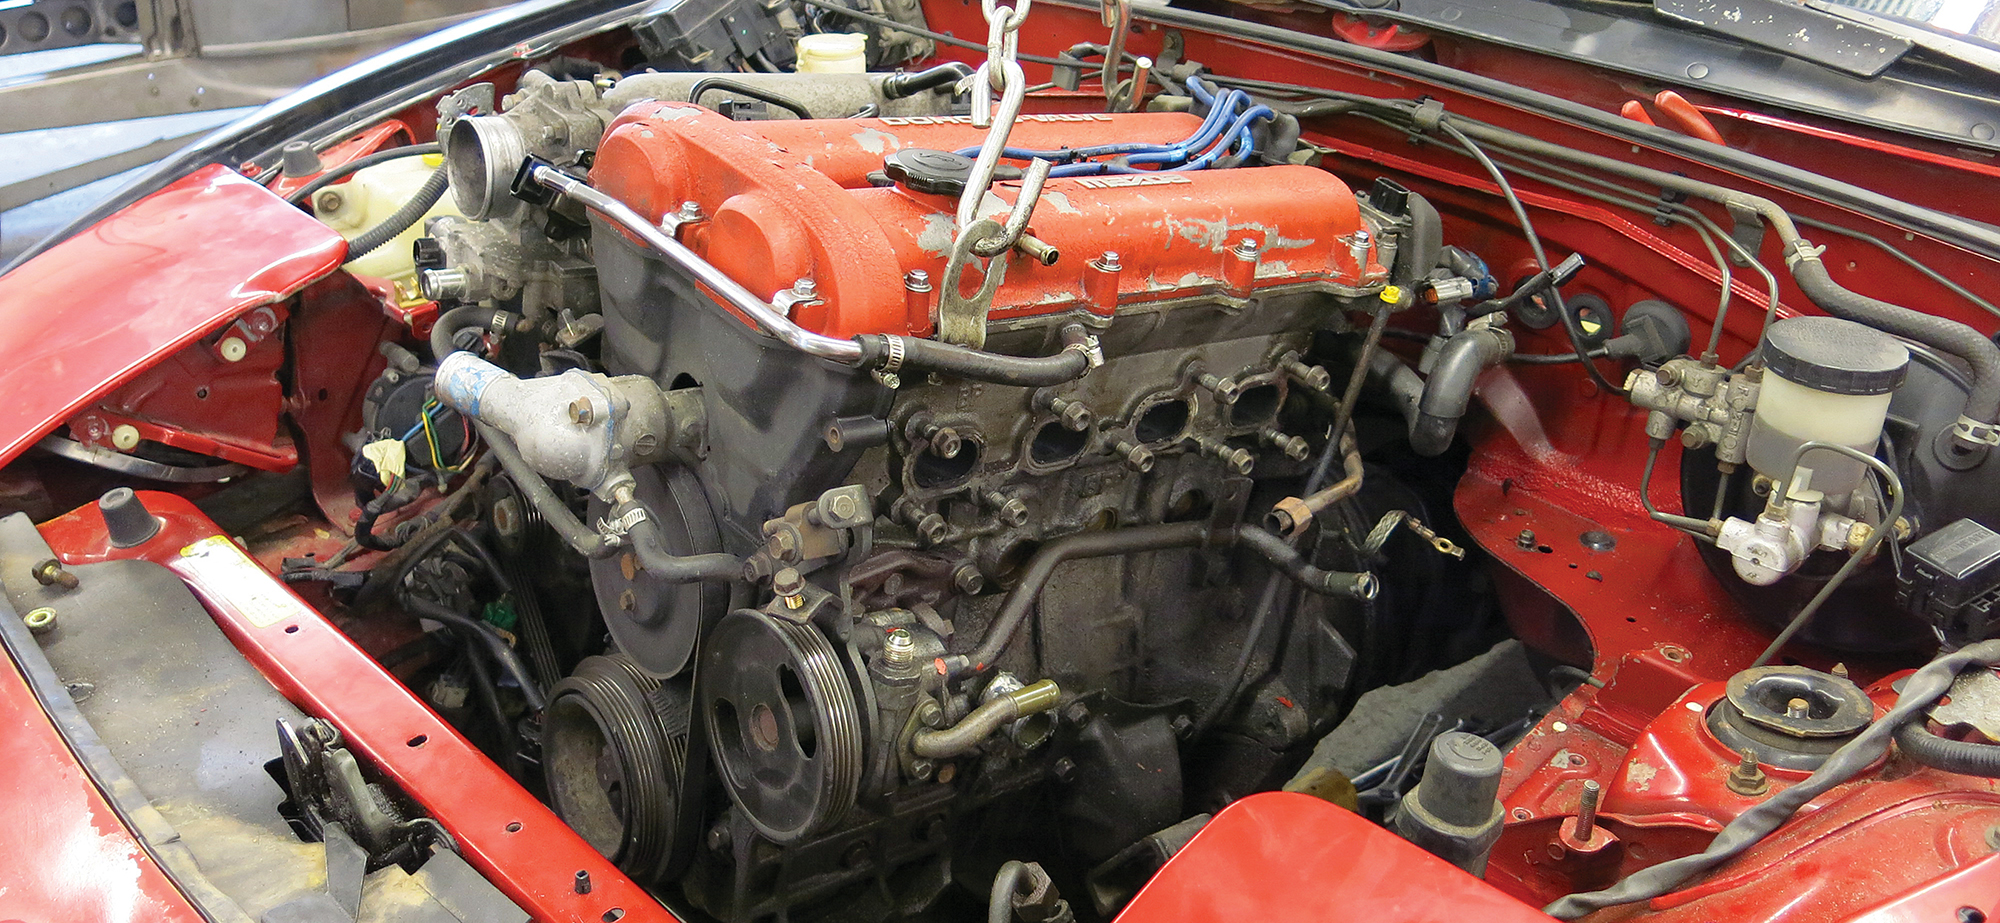 hight resolution of engine swap science 14 steps to begin your engine swap articles grassroots motorsports